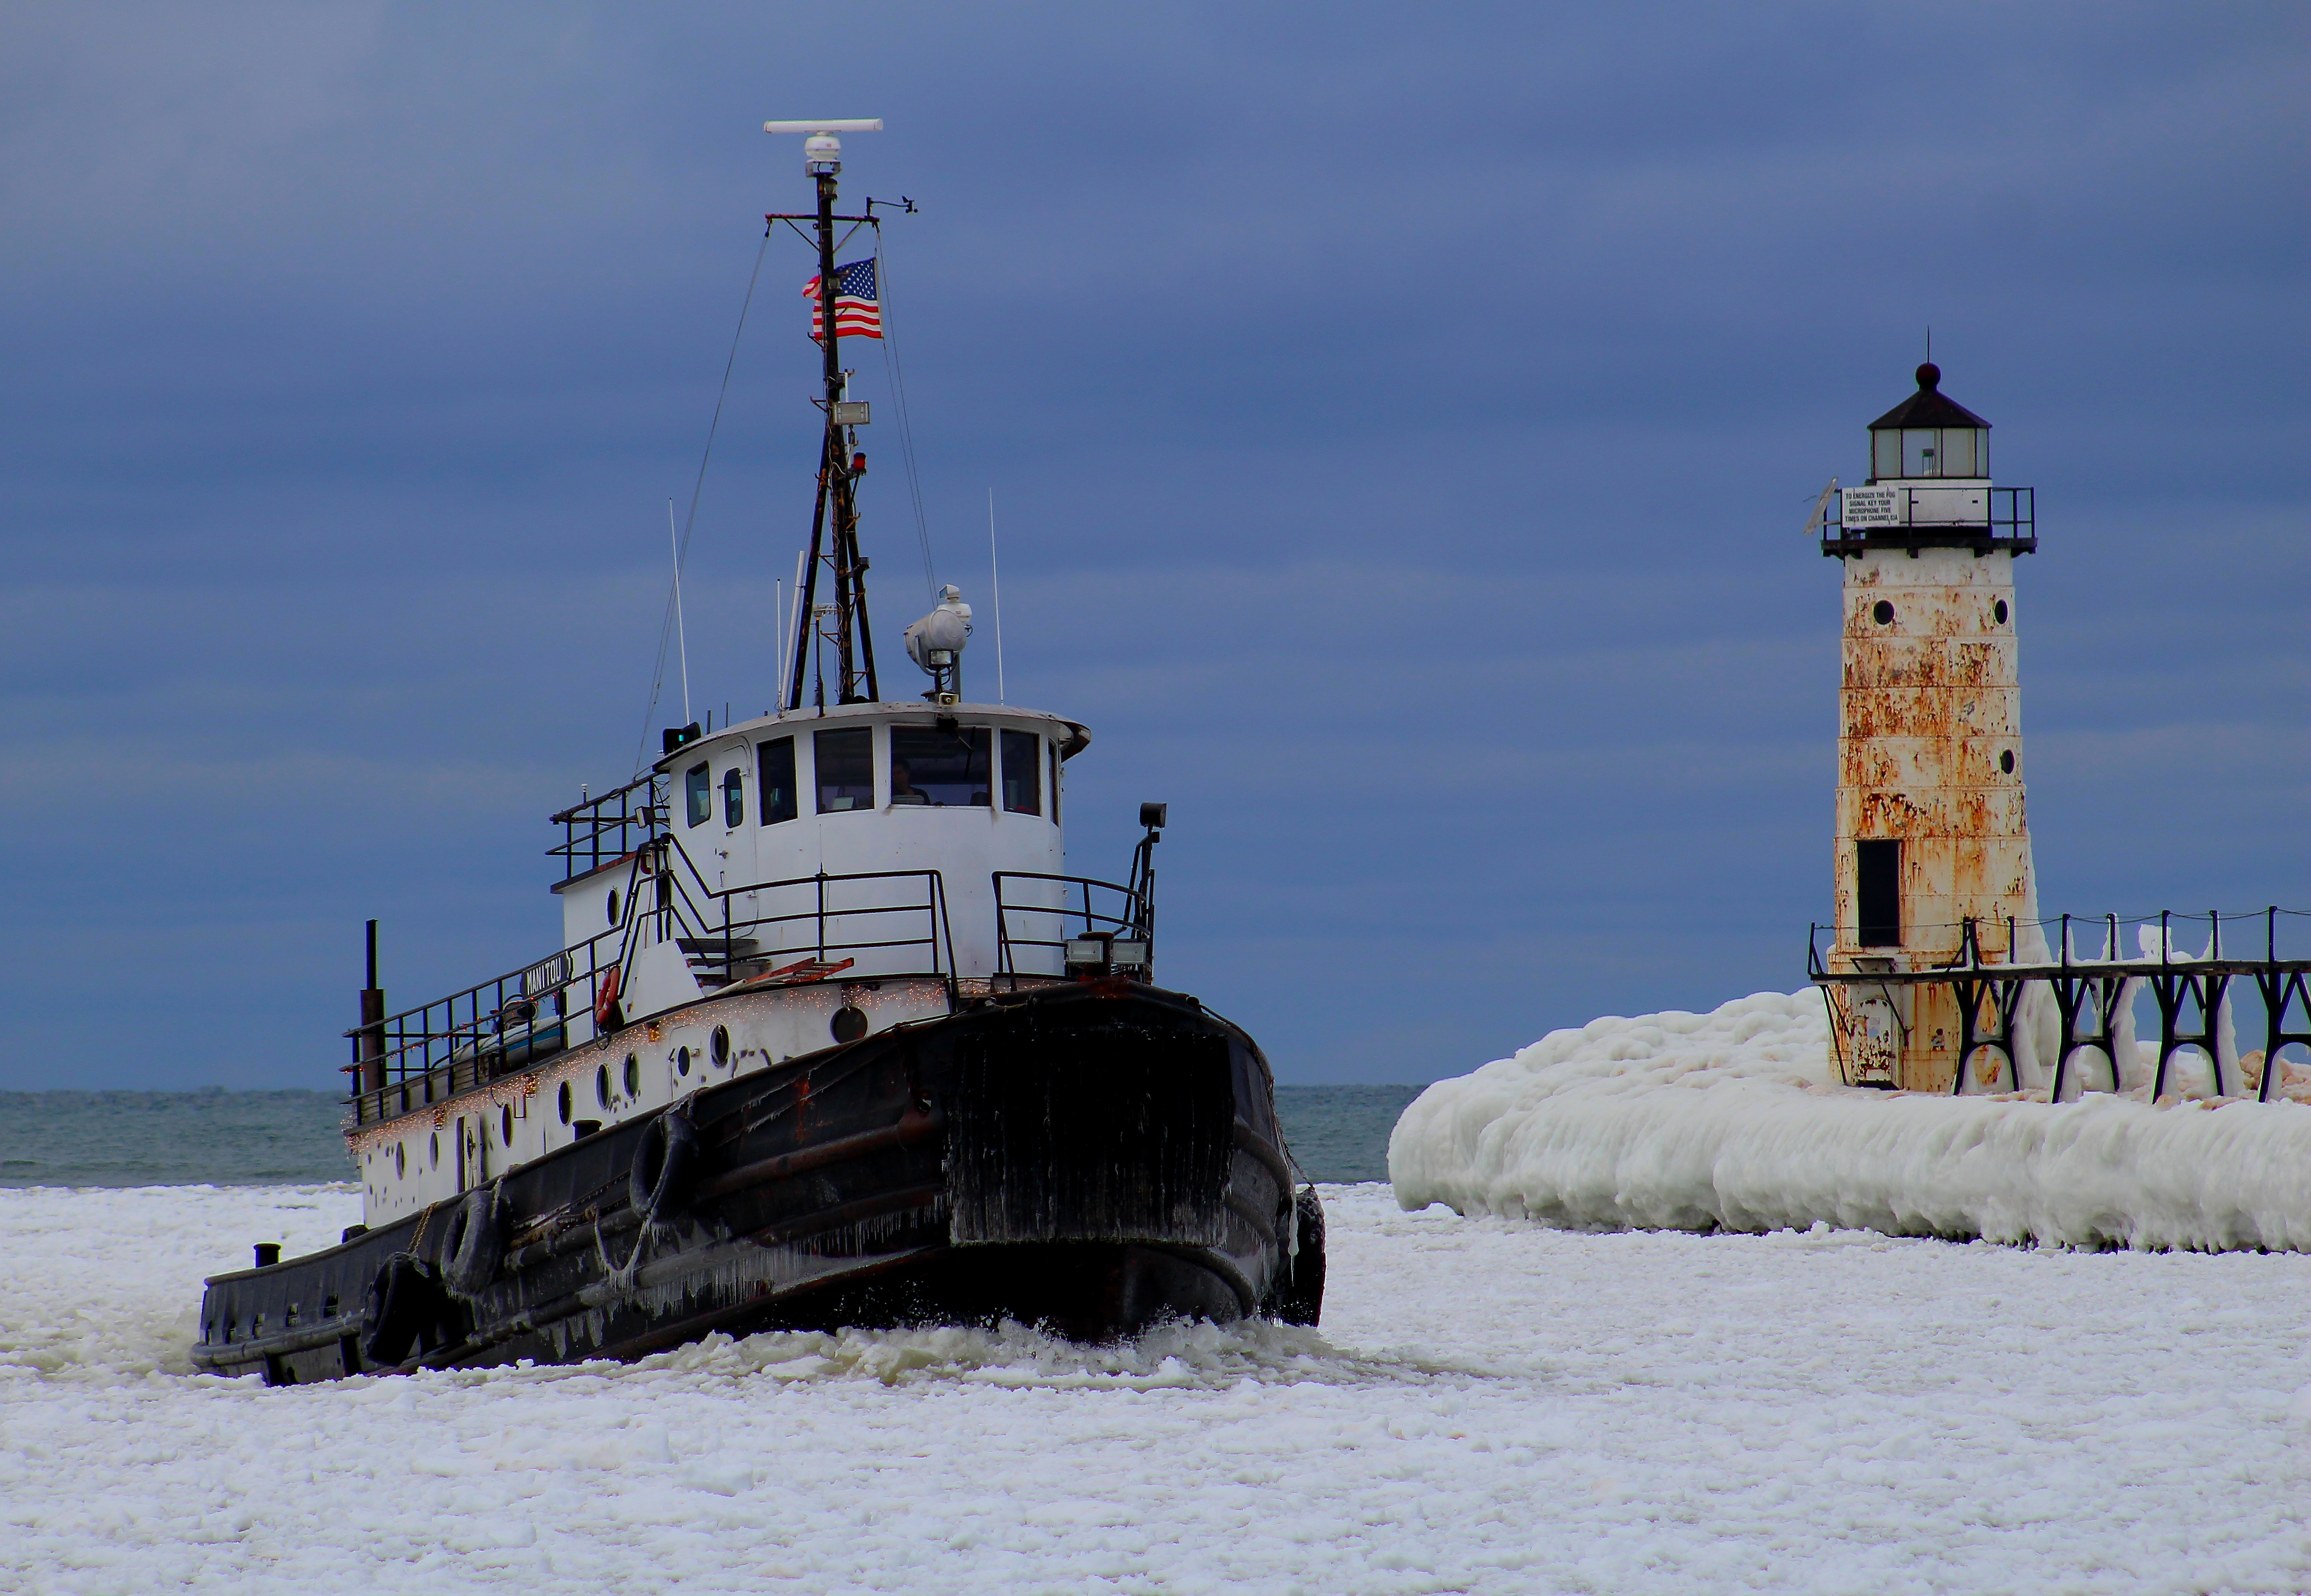 Tugboat entering Manistee River Channel with Fifth Avenue Lighthouse in background in winter